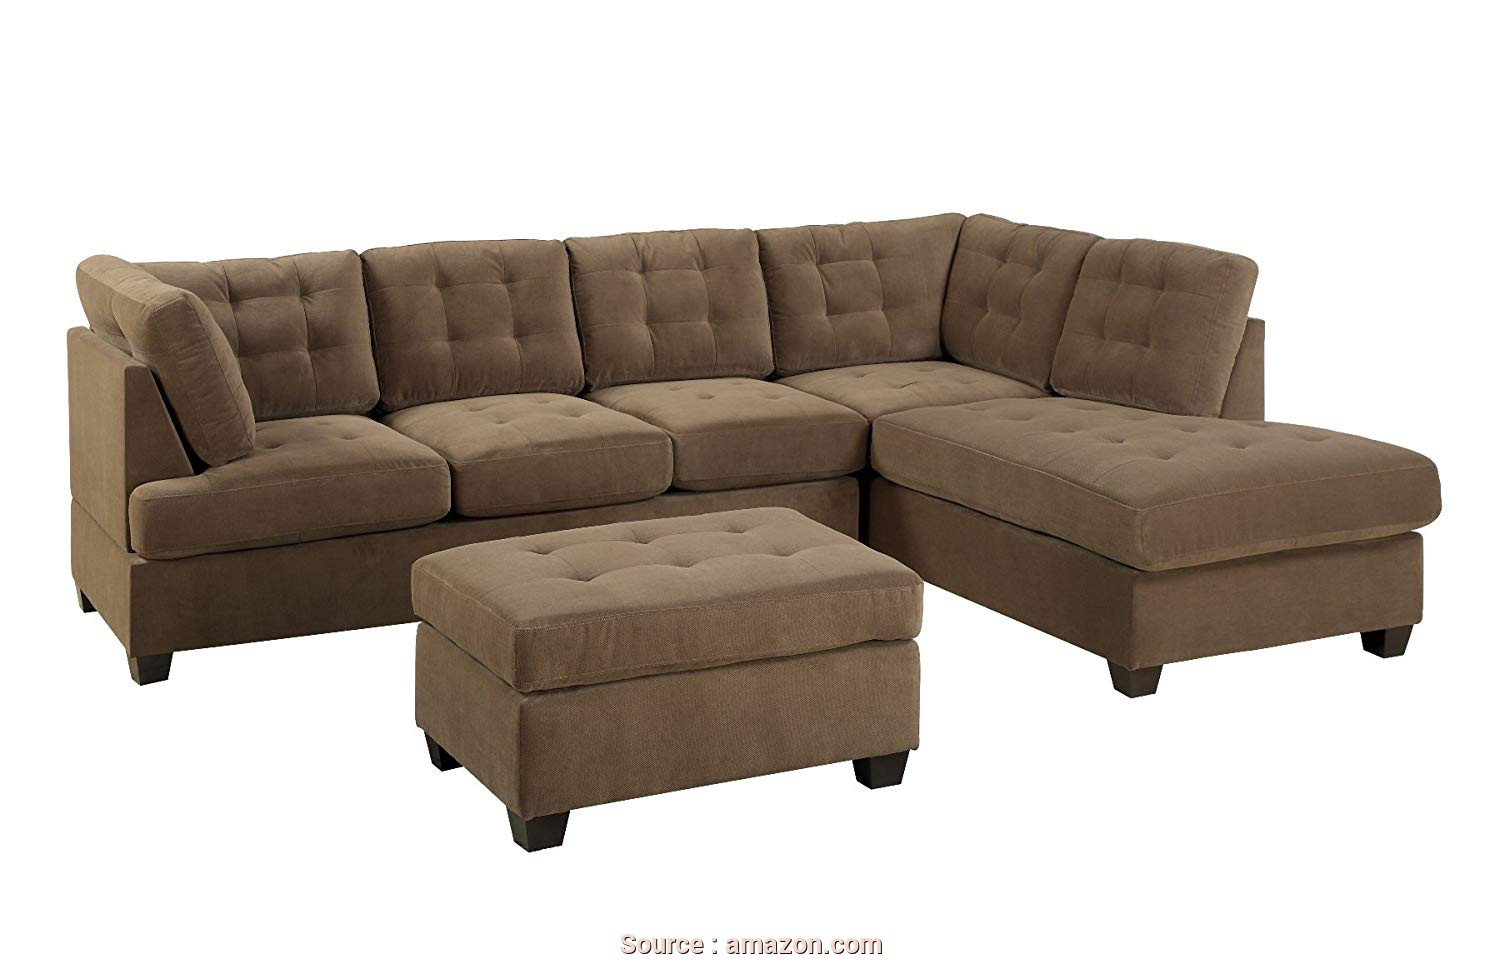 Divano Shabby, Chaise Longue, Superiore Amazon.Com: Bobkona Michelson 3-Pieces Reversible Sectional, Chaise, Loveseat With Ottoman: Kitchen & Dining